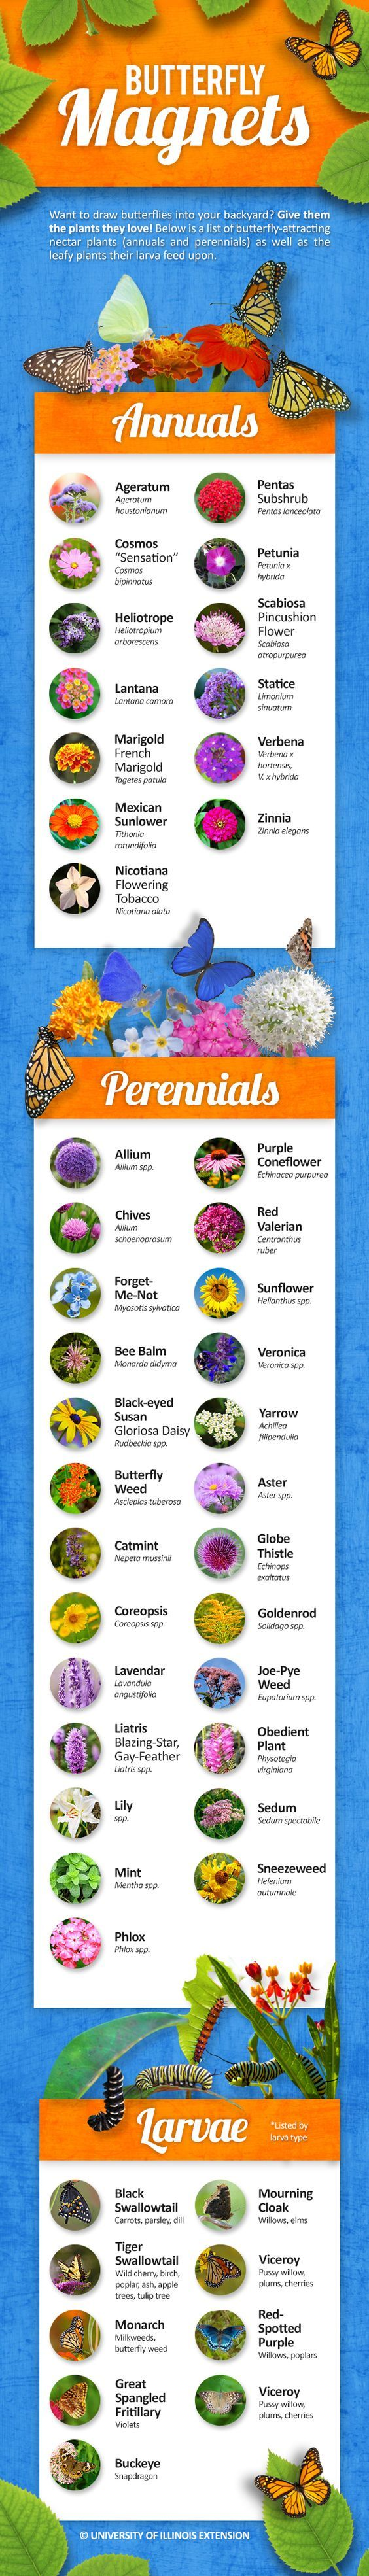 Check out these 10 favorite tips for annual flowers. Whether you are filling planters or flowers beds, these tips will help you maintain healthy annual flowers year round.